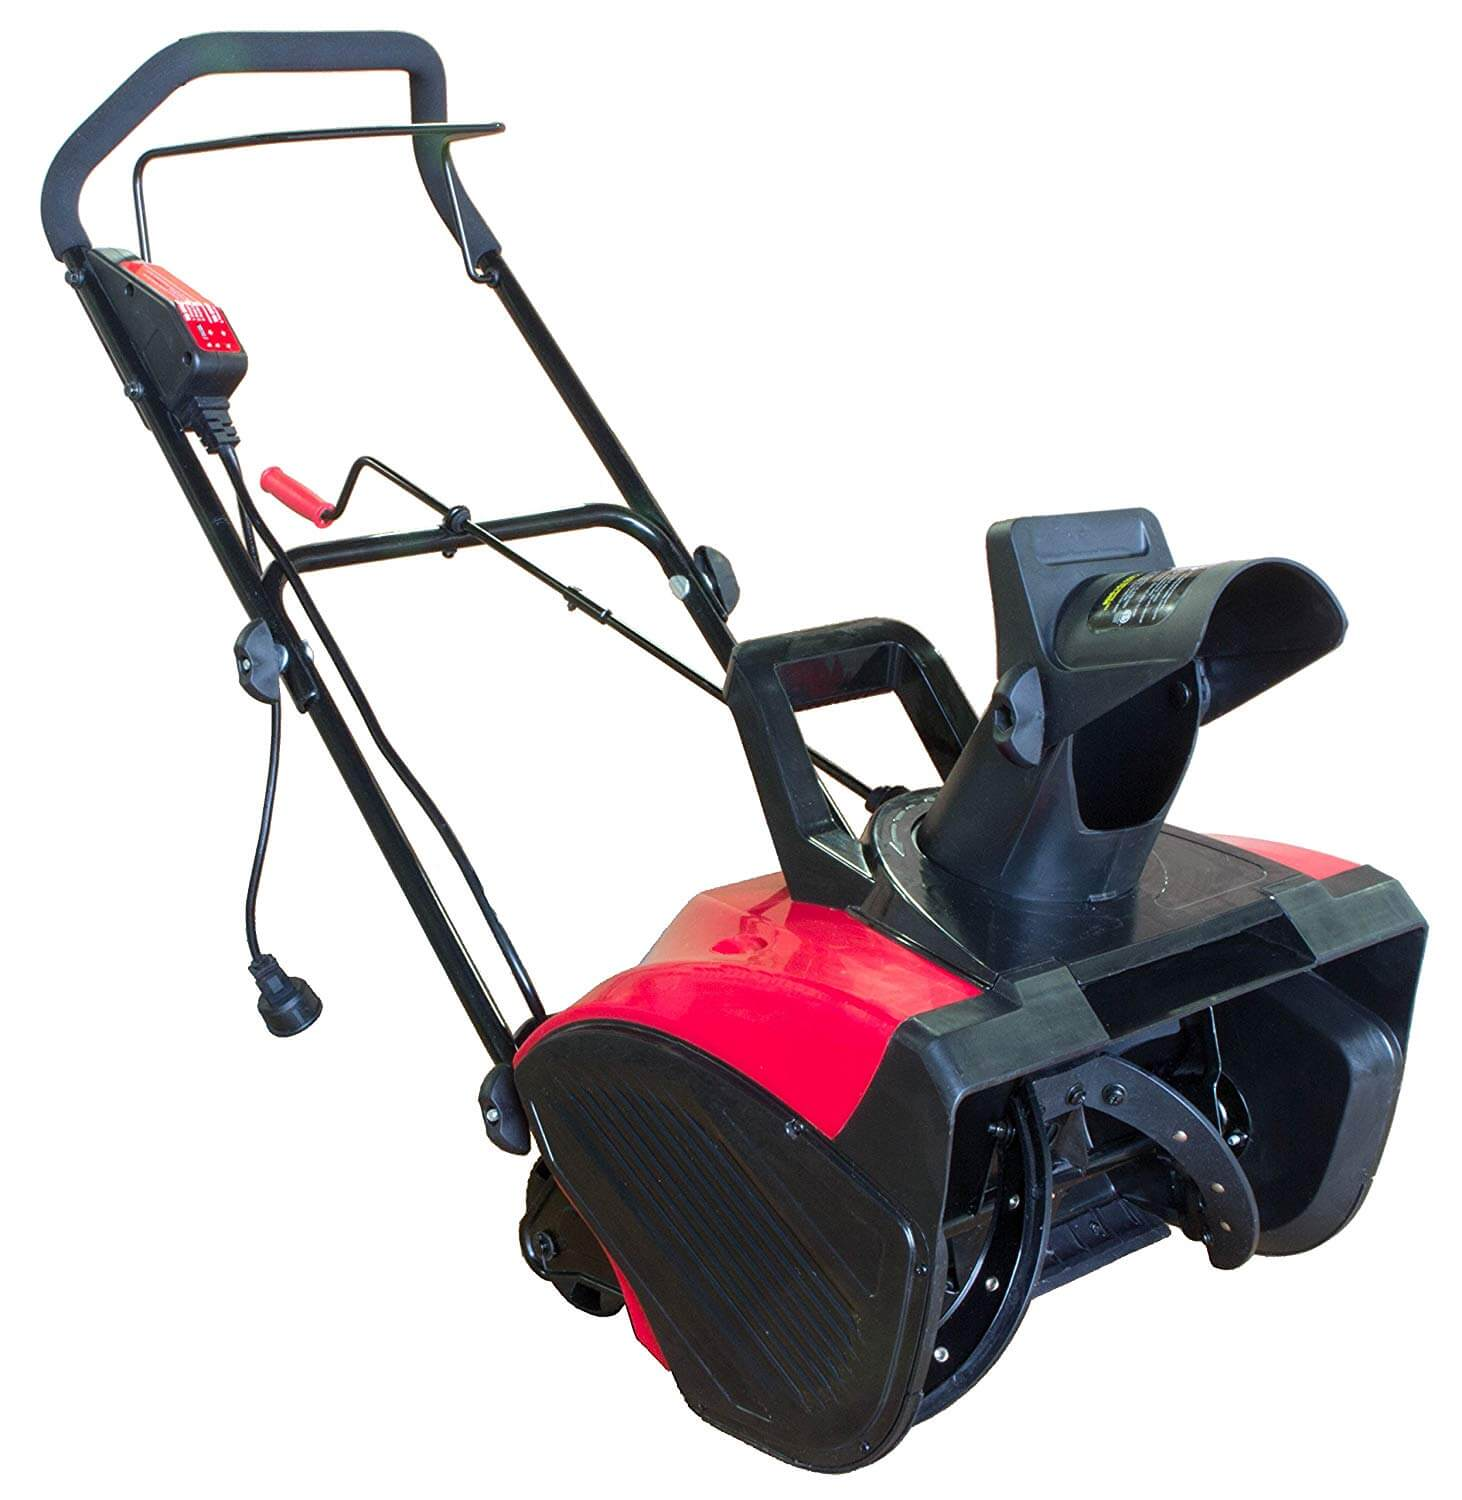 power-smart-snow-thrower